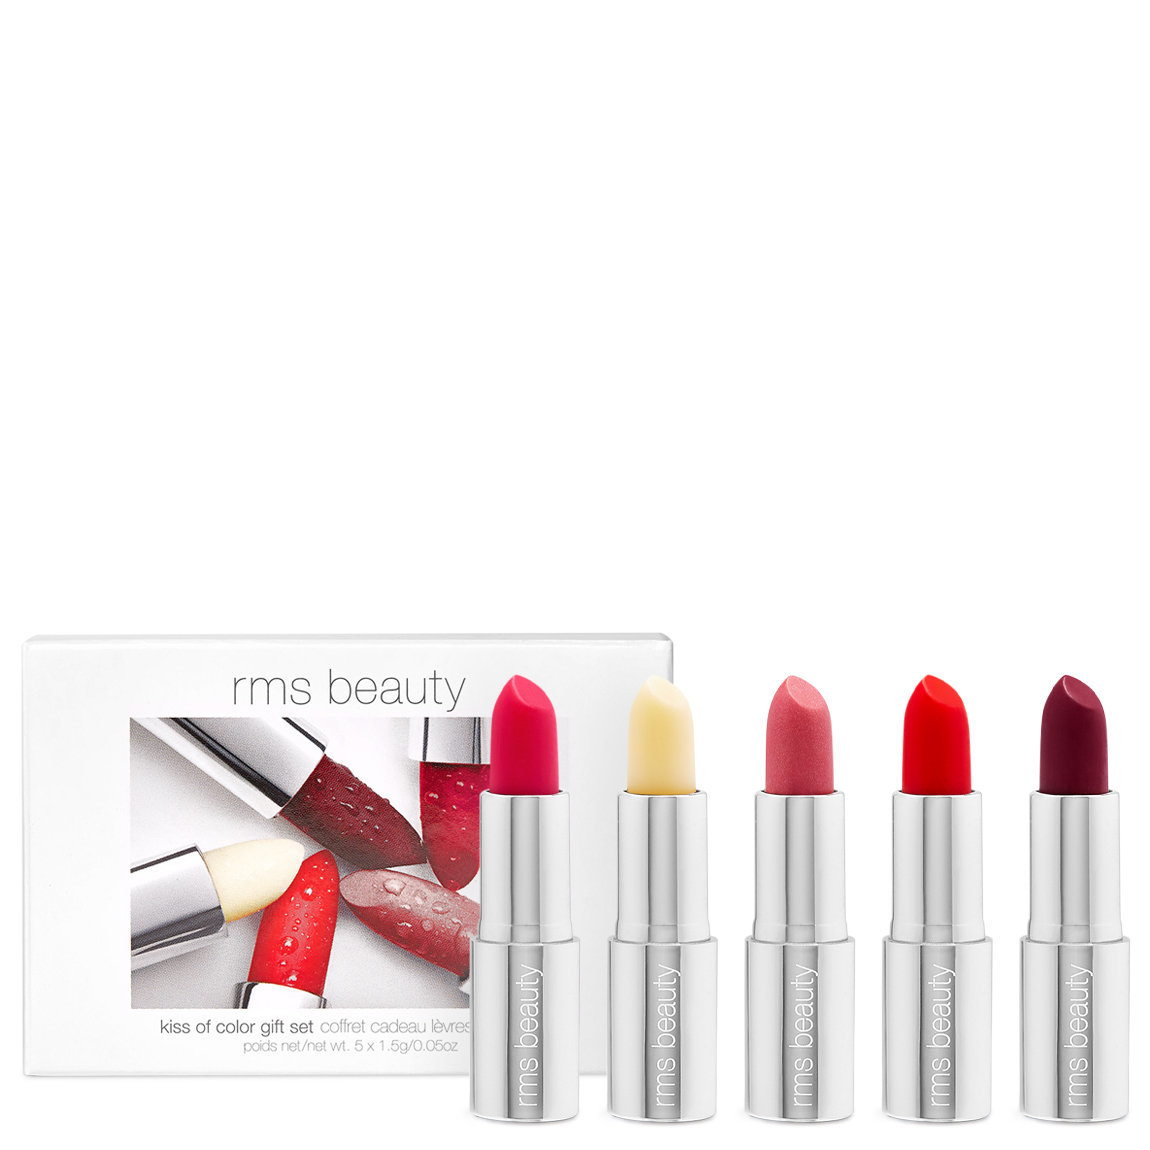 rms beauty Kiss of Color Gift Set alternative view 1 - product swatch.